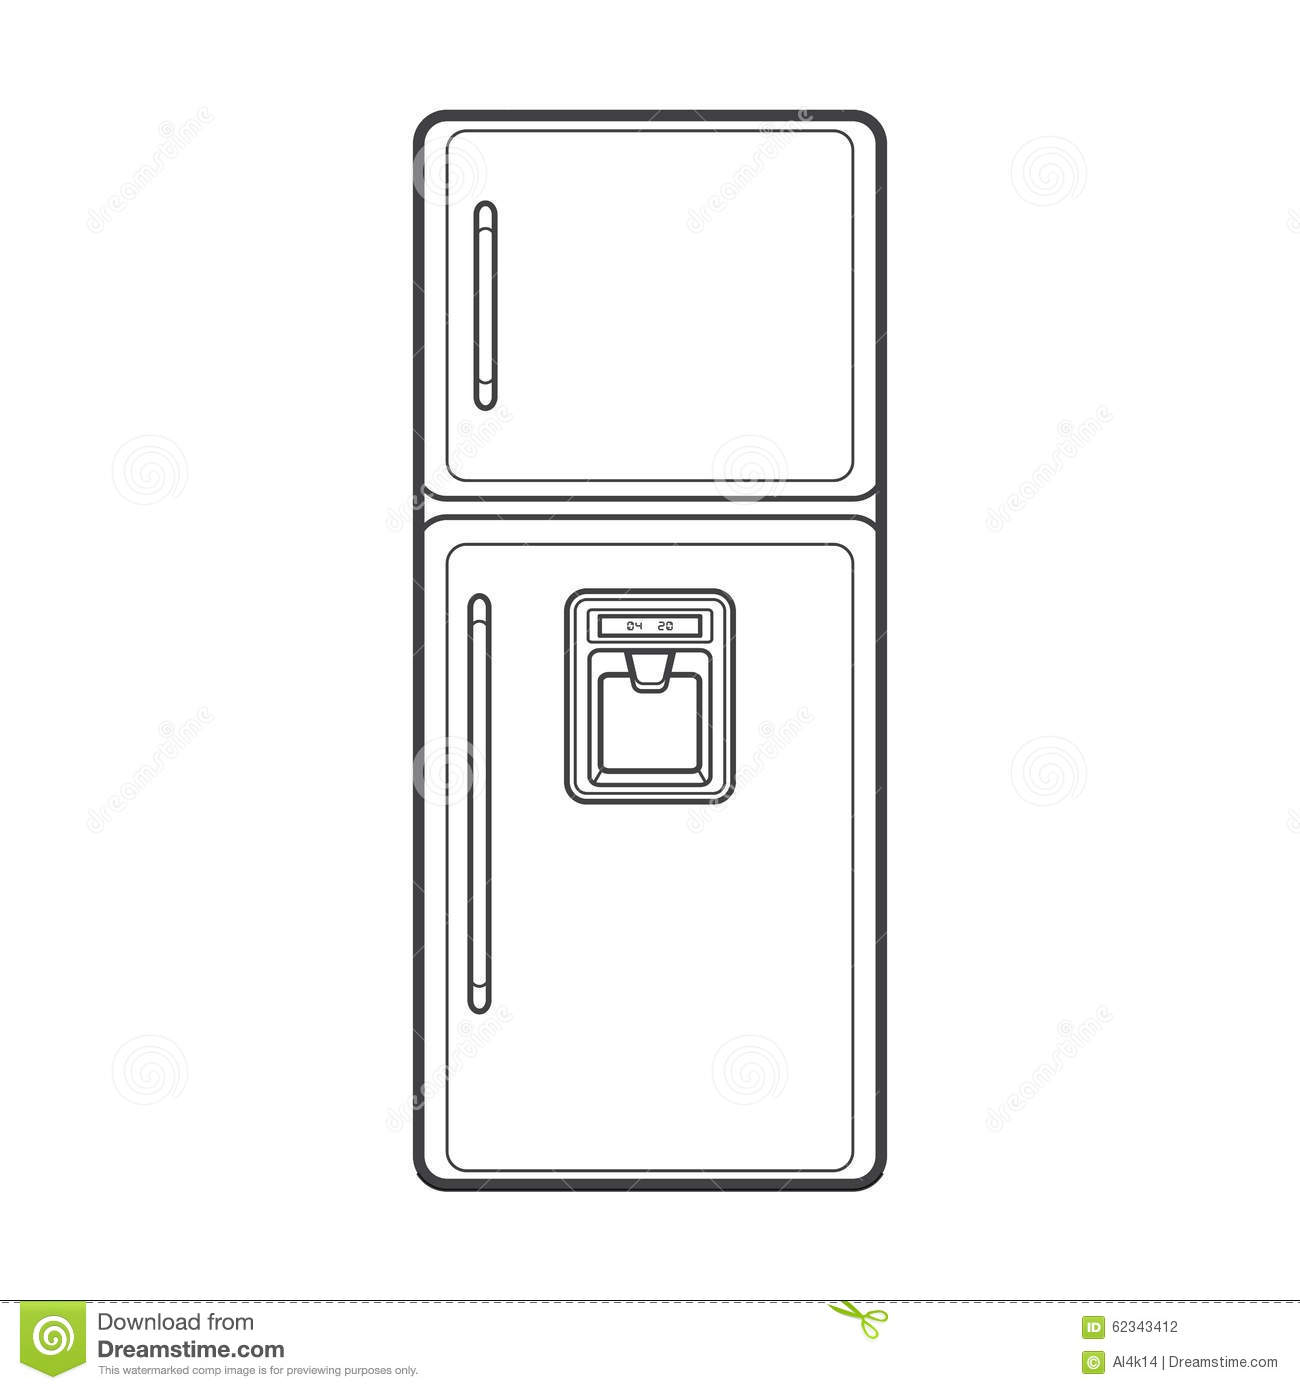 Outline Kitchen Refrigerator Illustration Stock Vector ...